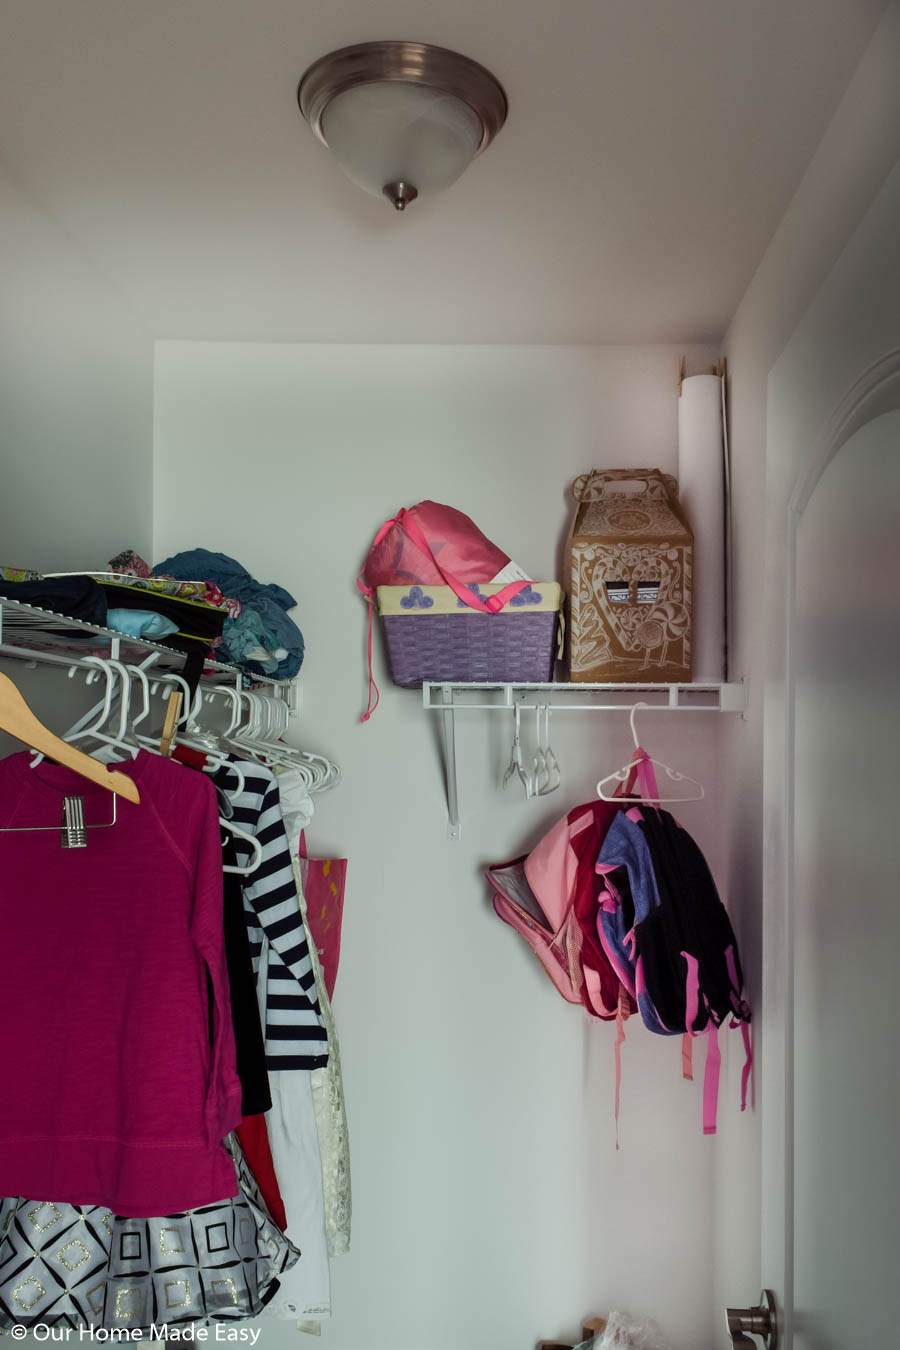 There's nothing more overwhelming than a small, disorganized closet.